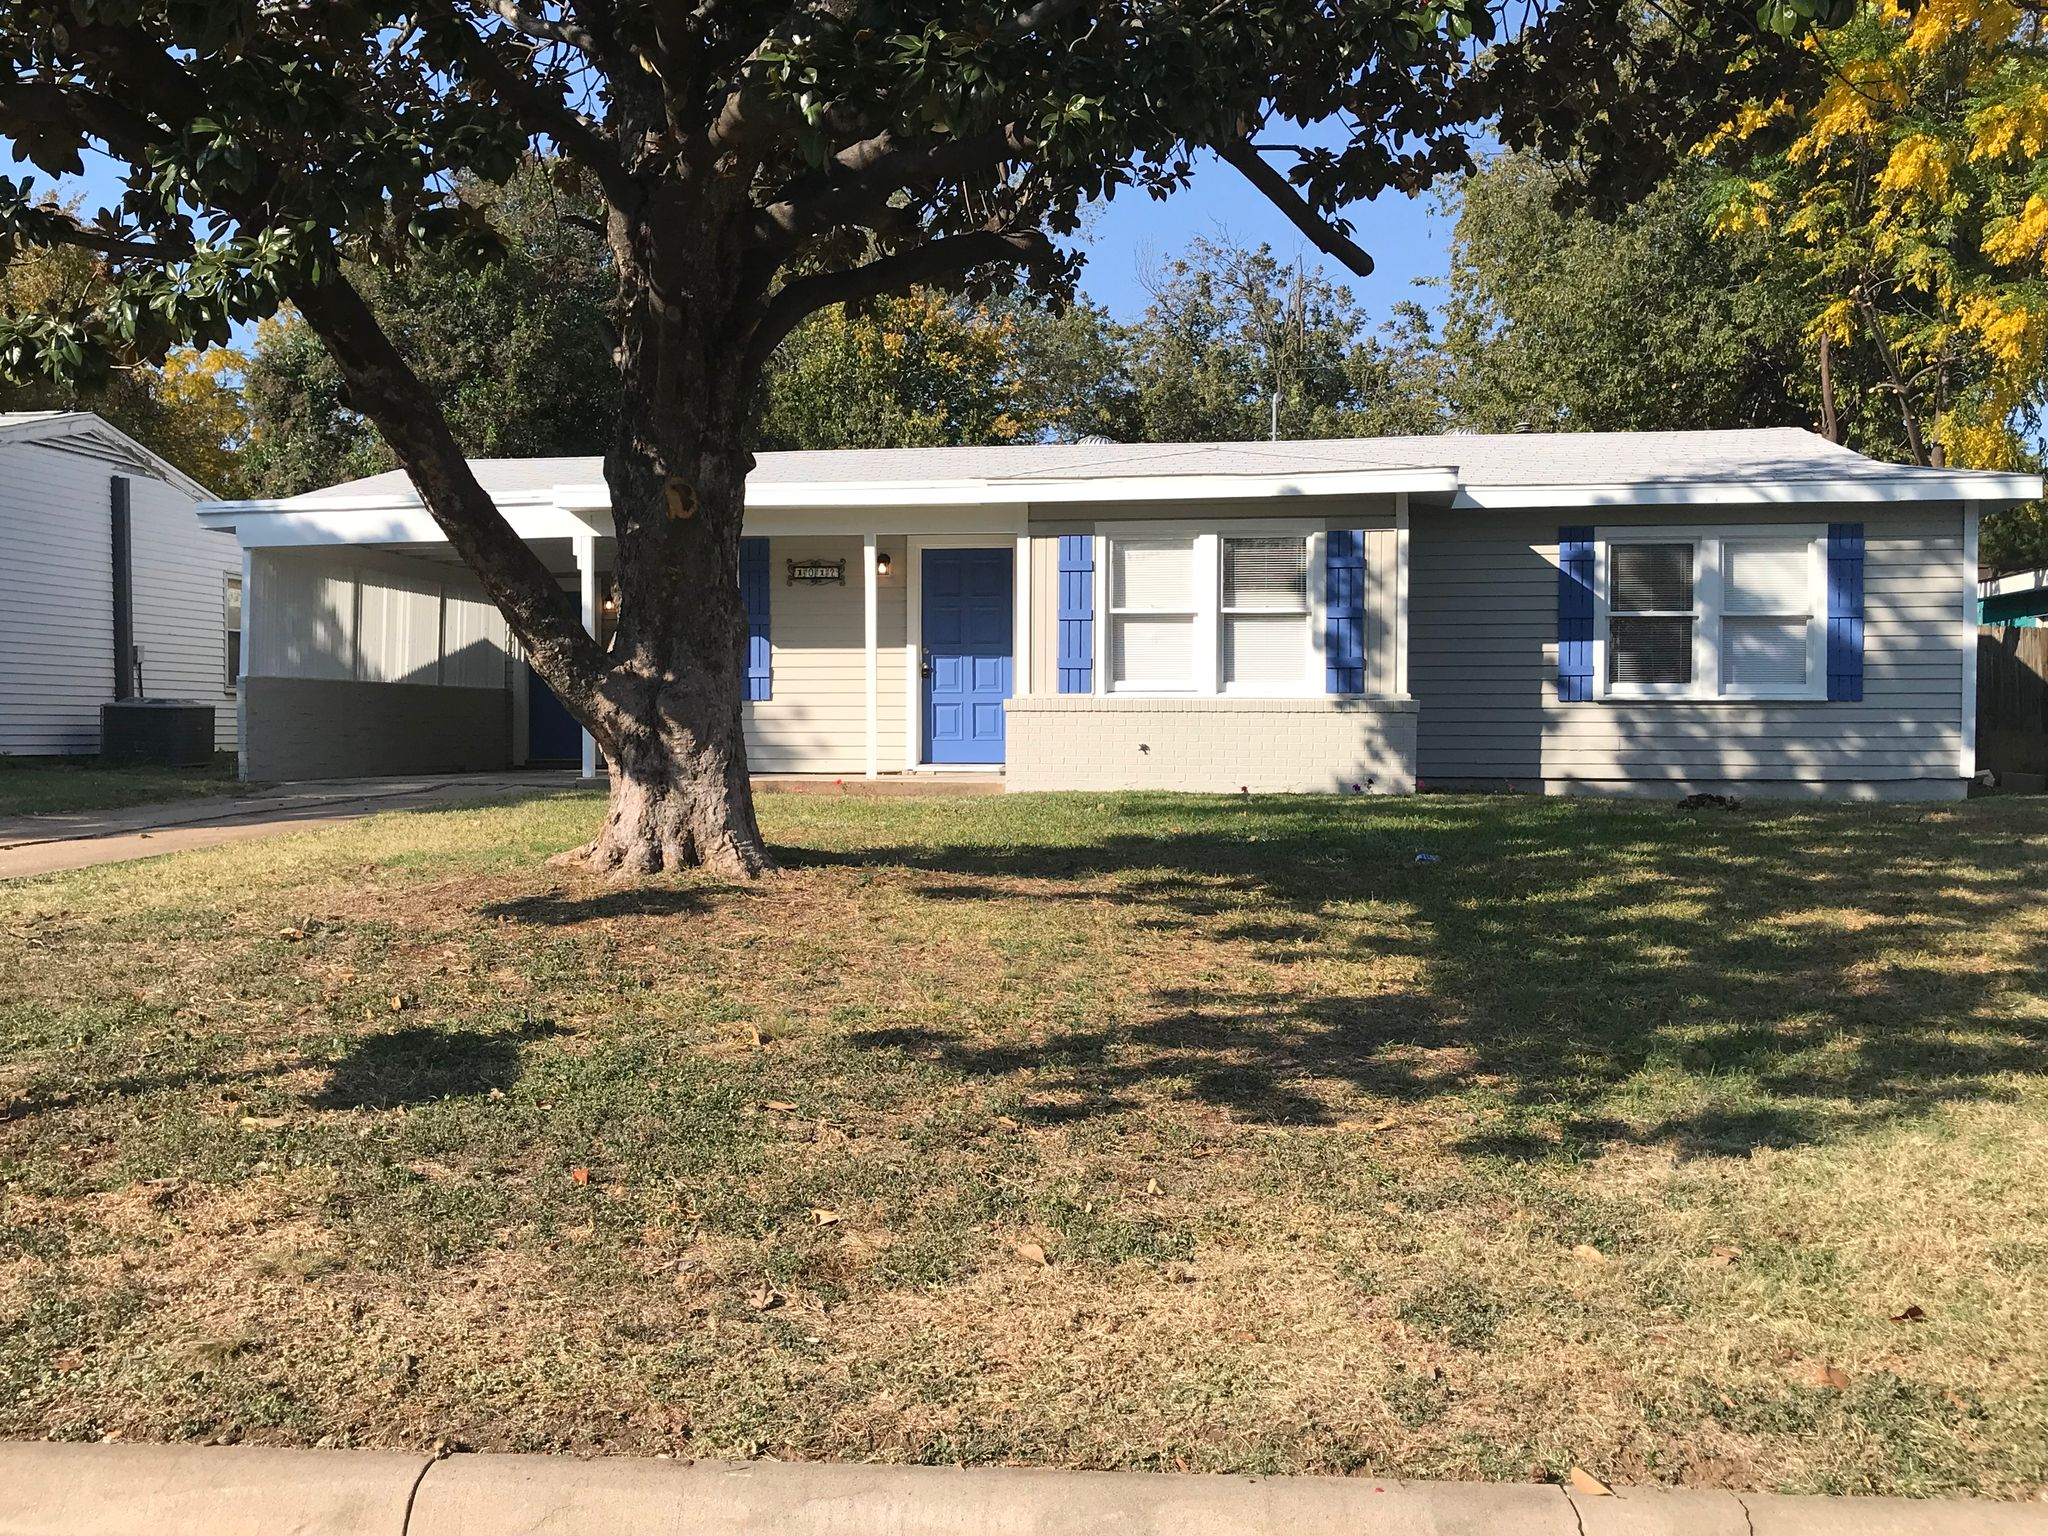 1012 hamsted st for sale fort worth tx trulia